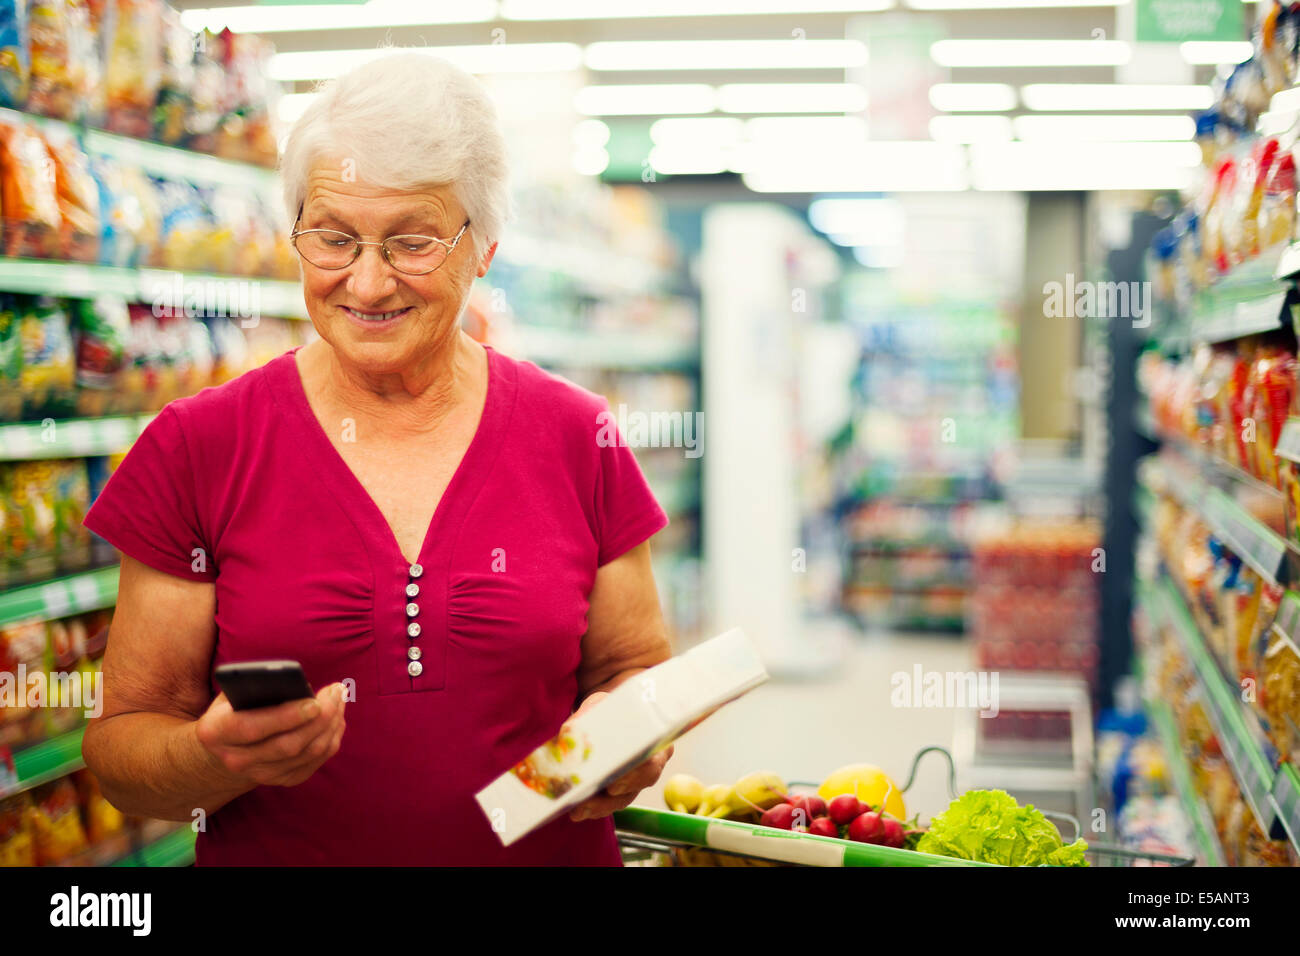 Senior woman texting on mobile phone at supermarket Debica, Poland - Stock Image